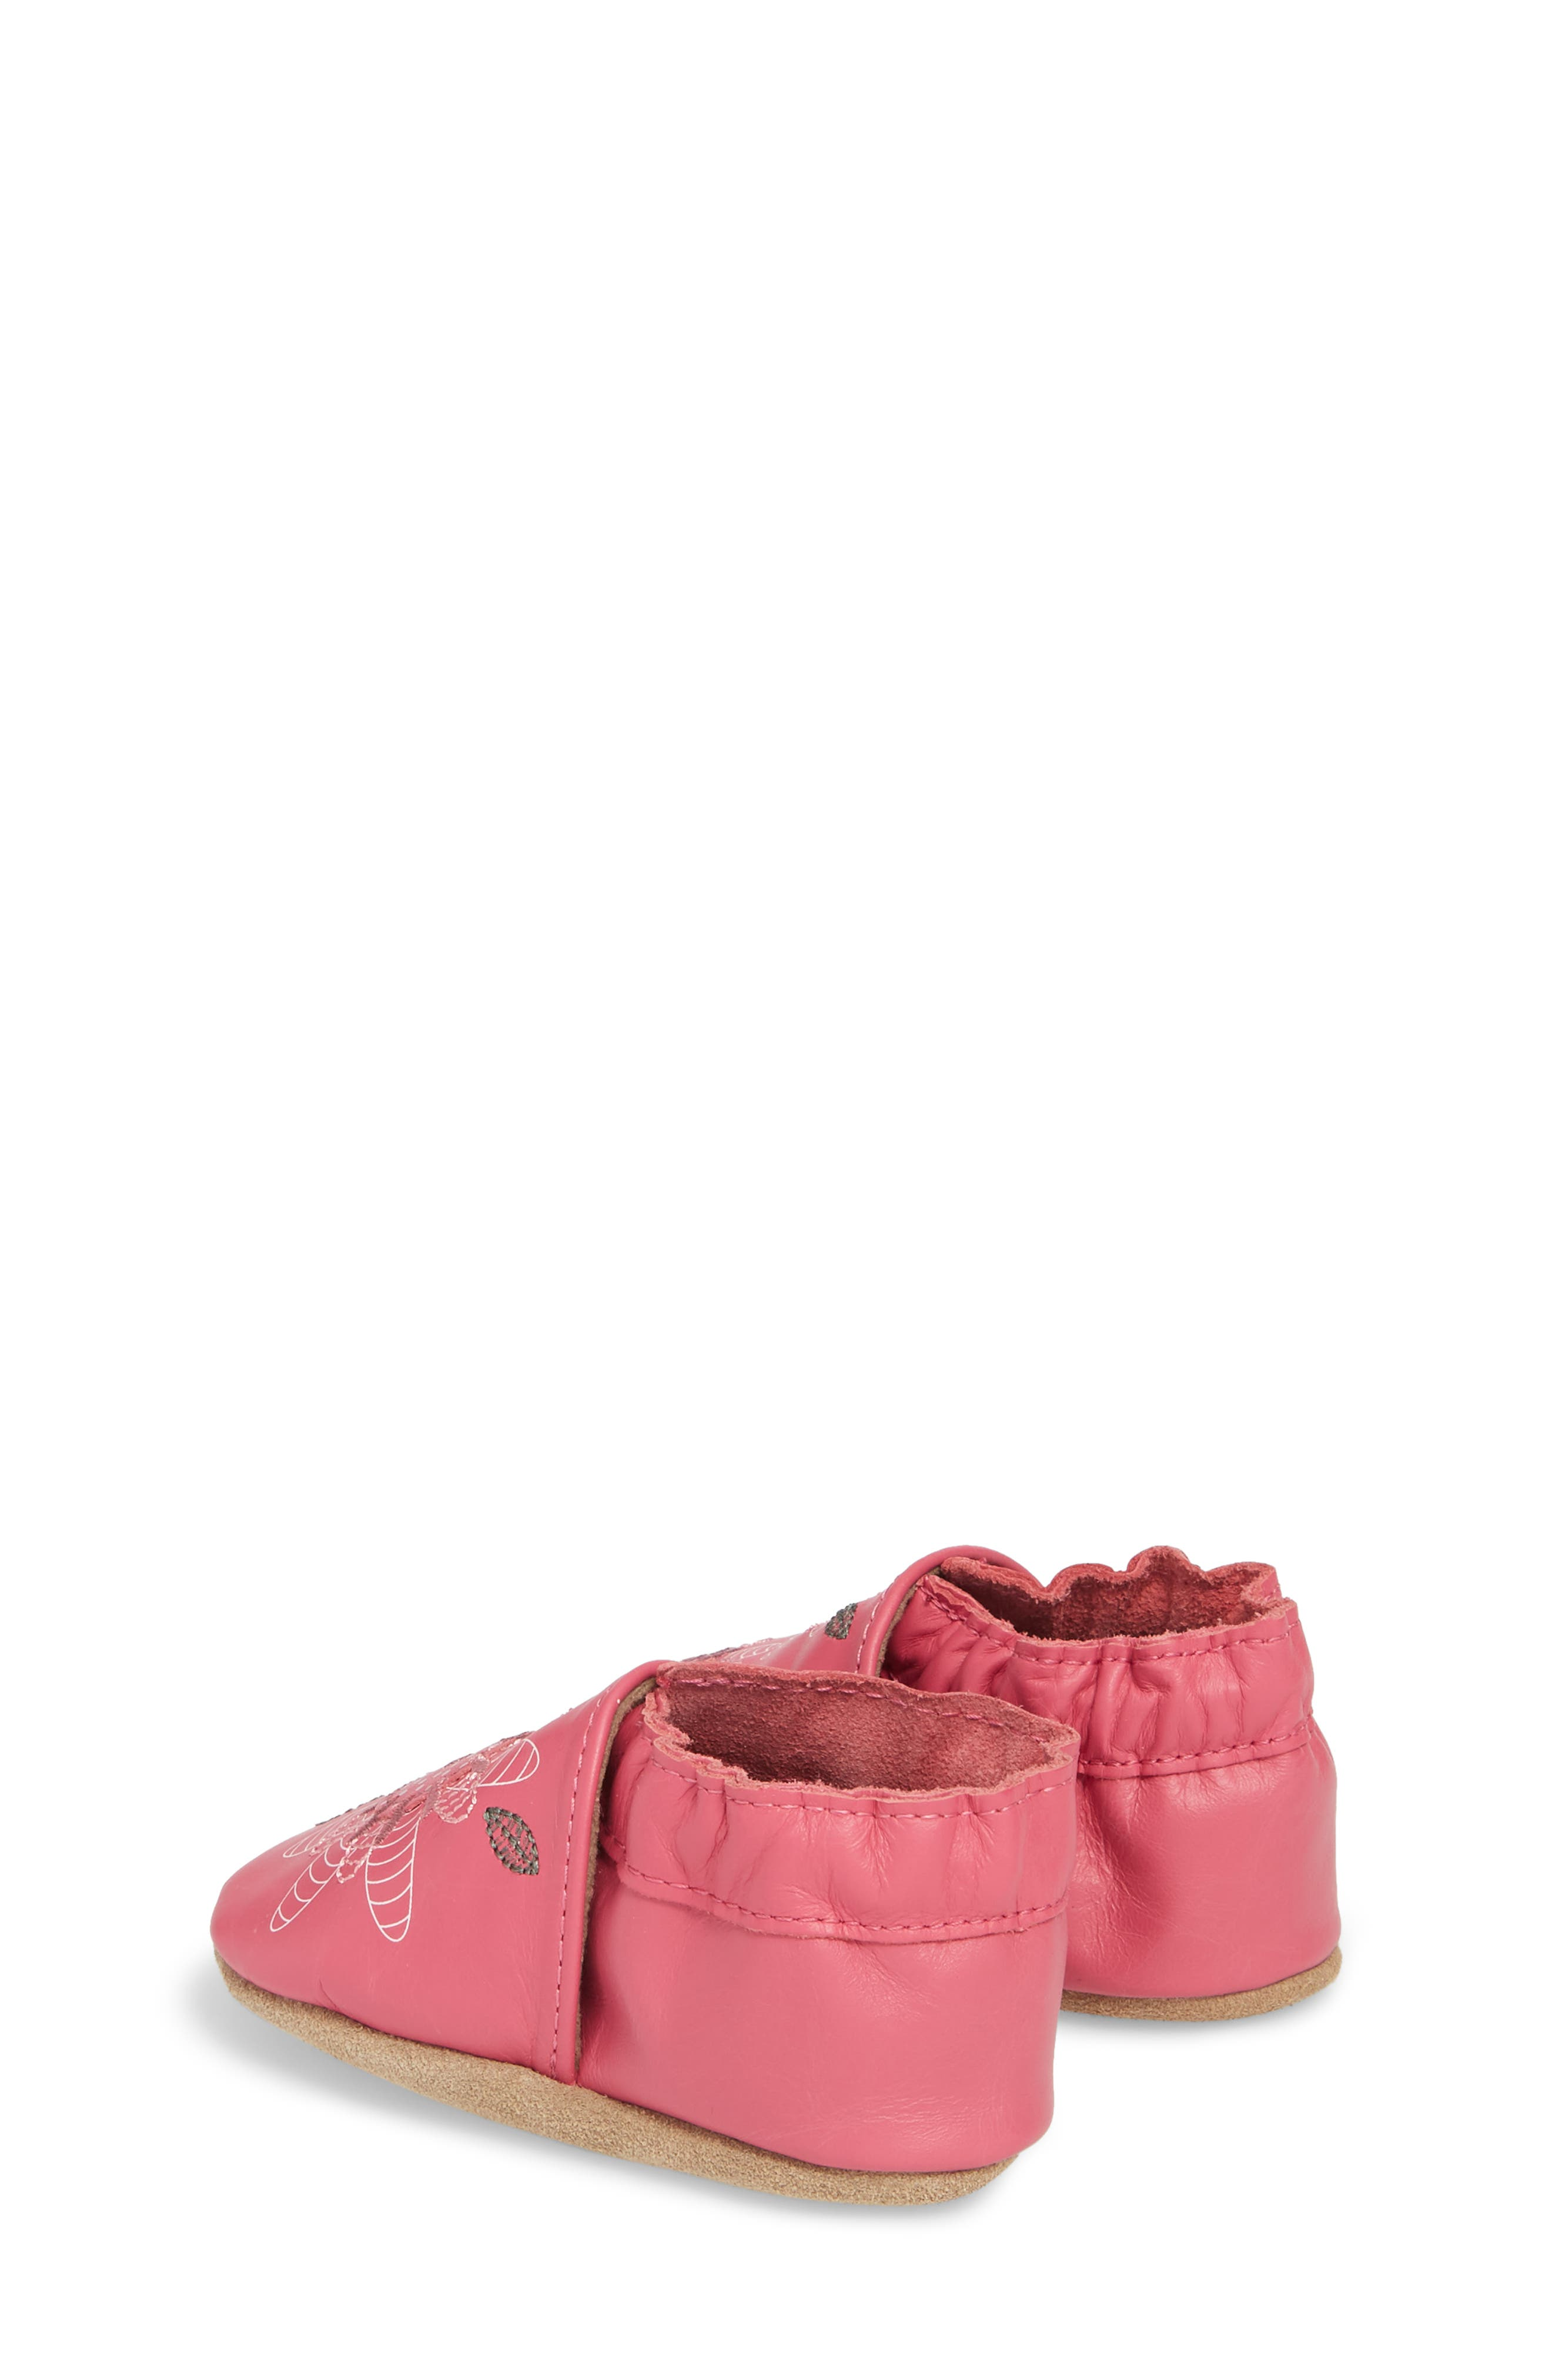 Fiona Flower Moccasin Crib Shoe,                             Alternate thumbnail 2, color,                             HOT PINK